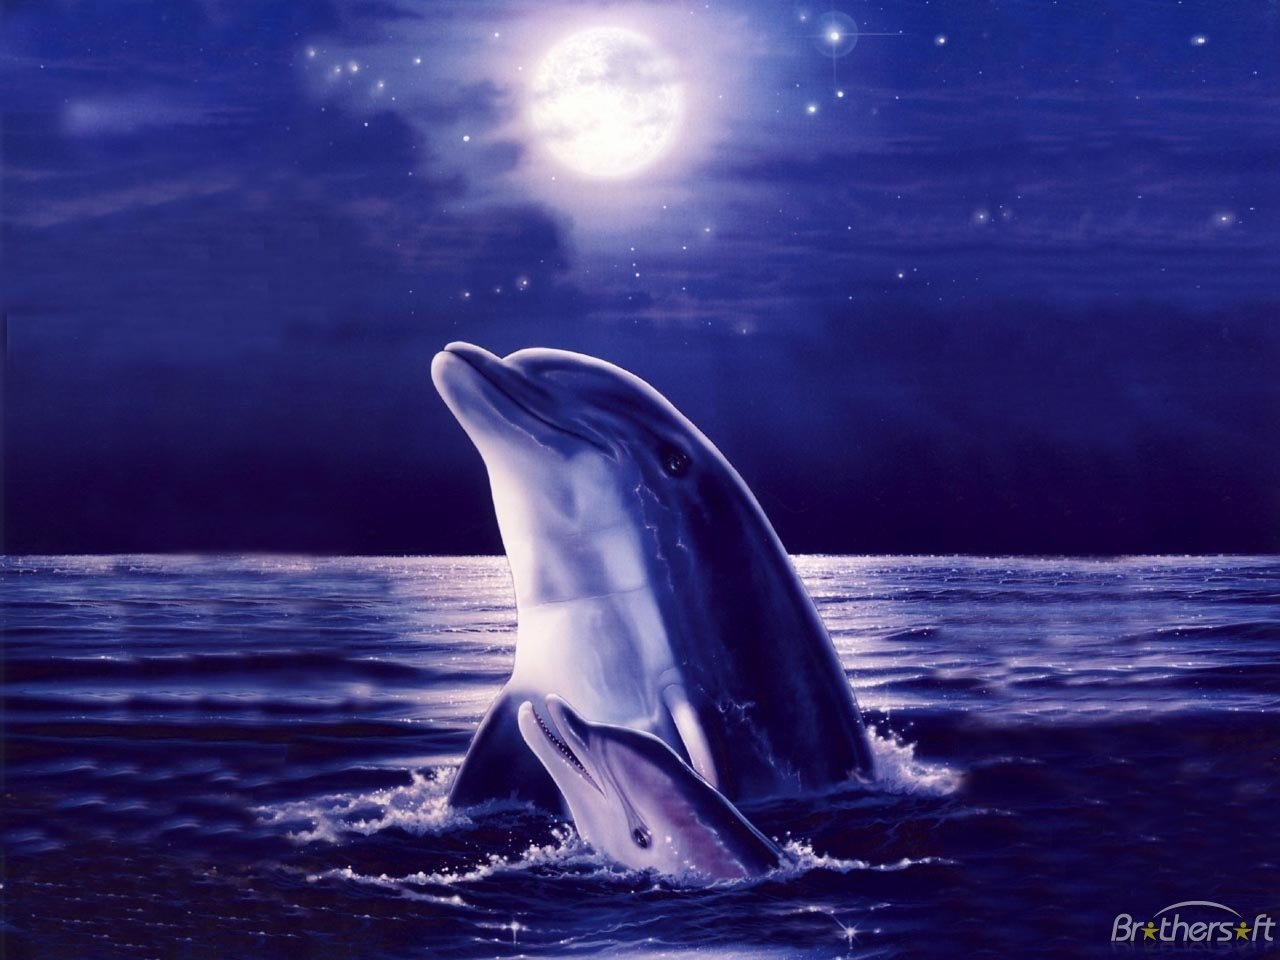 Download MOONLIGHT DOLPHINS WALLPAPER MOONLIGHT DOLPHINS 1280x960